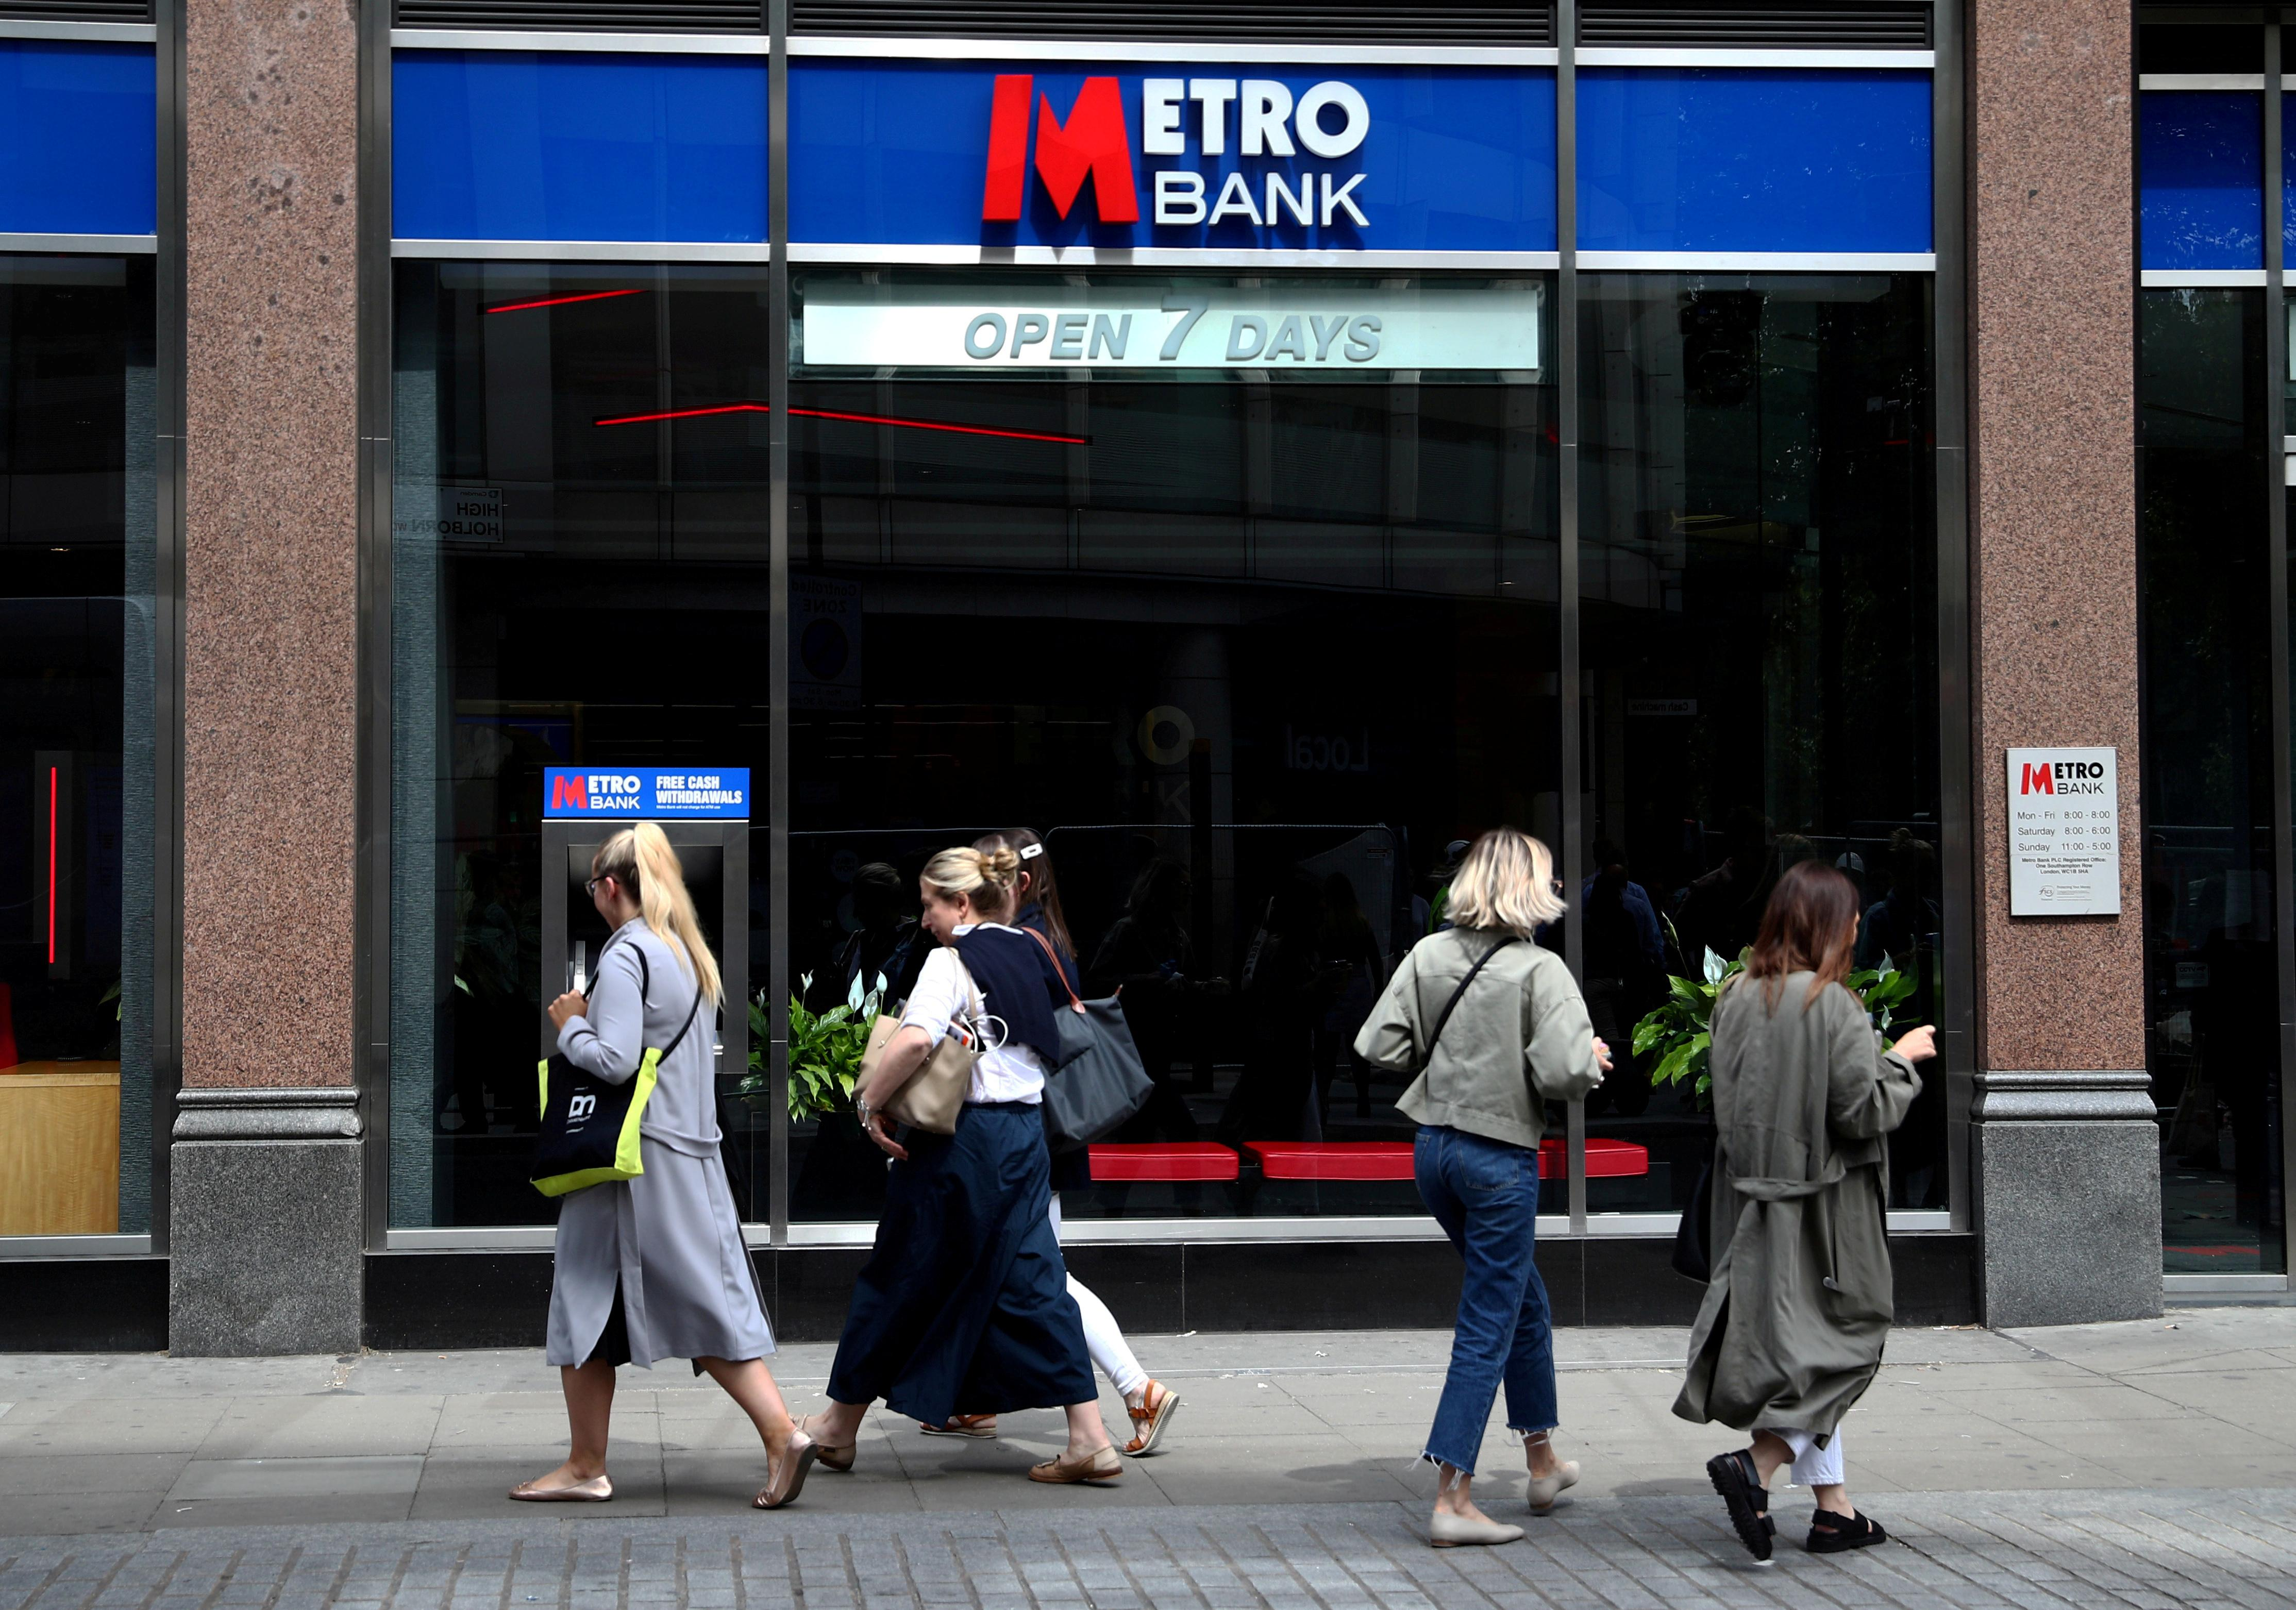 Small British banks want softer rules to help them compete